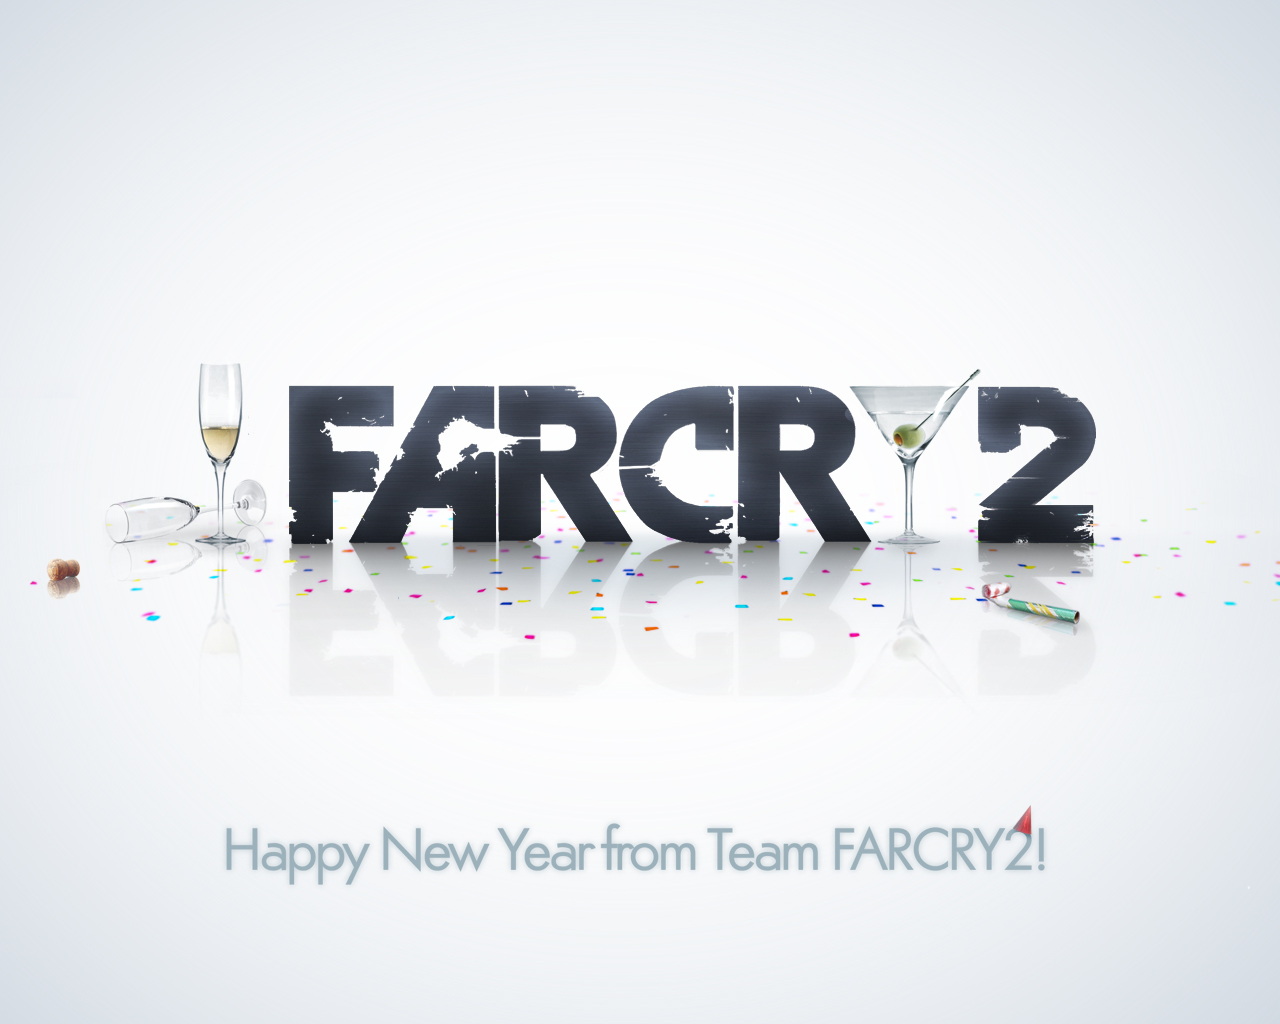 FarCry 2 New Year